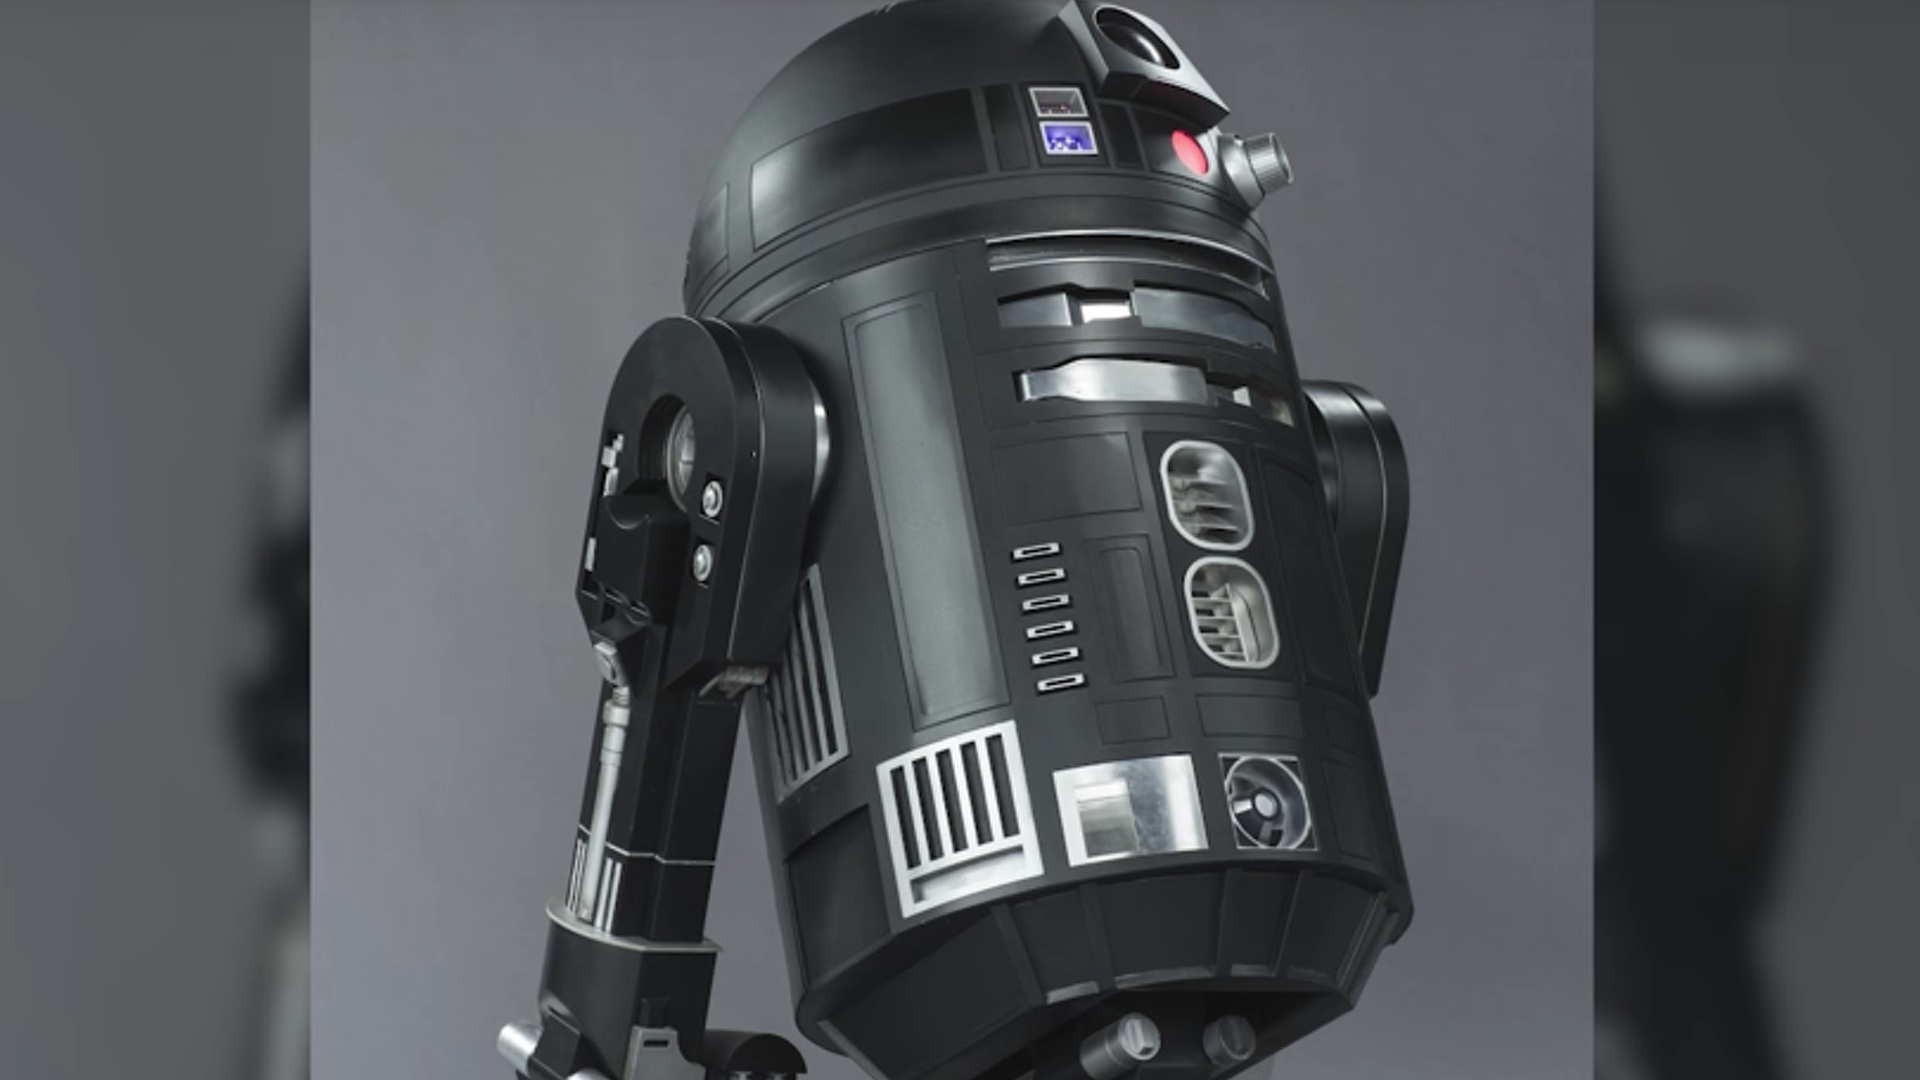 The Empire Has Their Own R2 Model Droid In ROGUE ONE: A STAR WARS